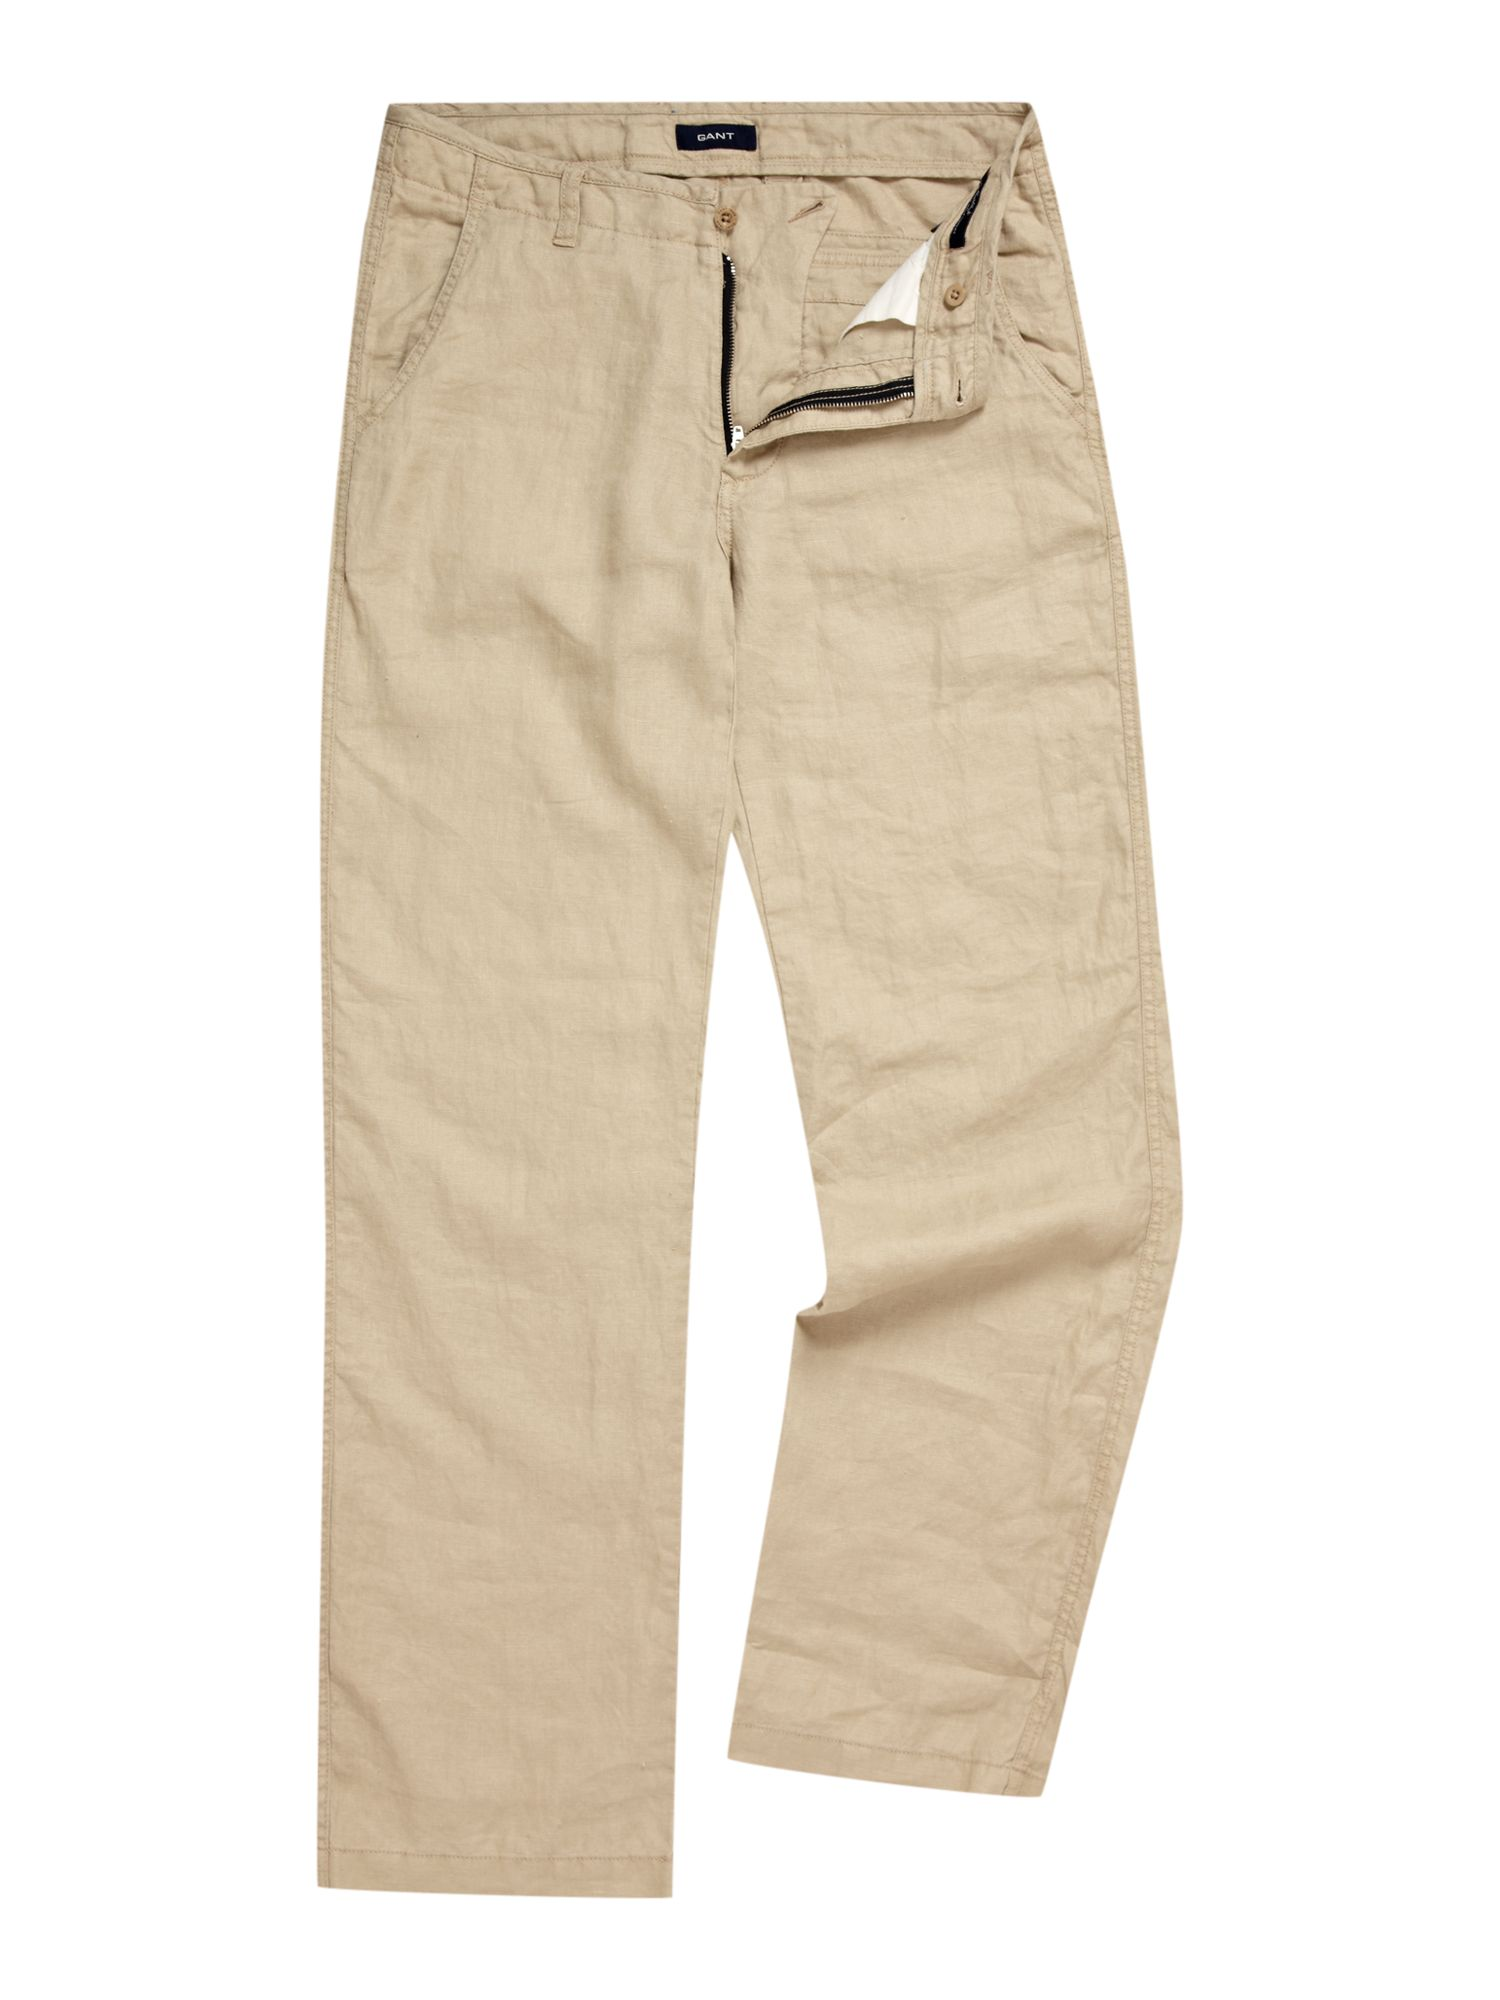 Straight cut linen chino